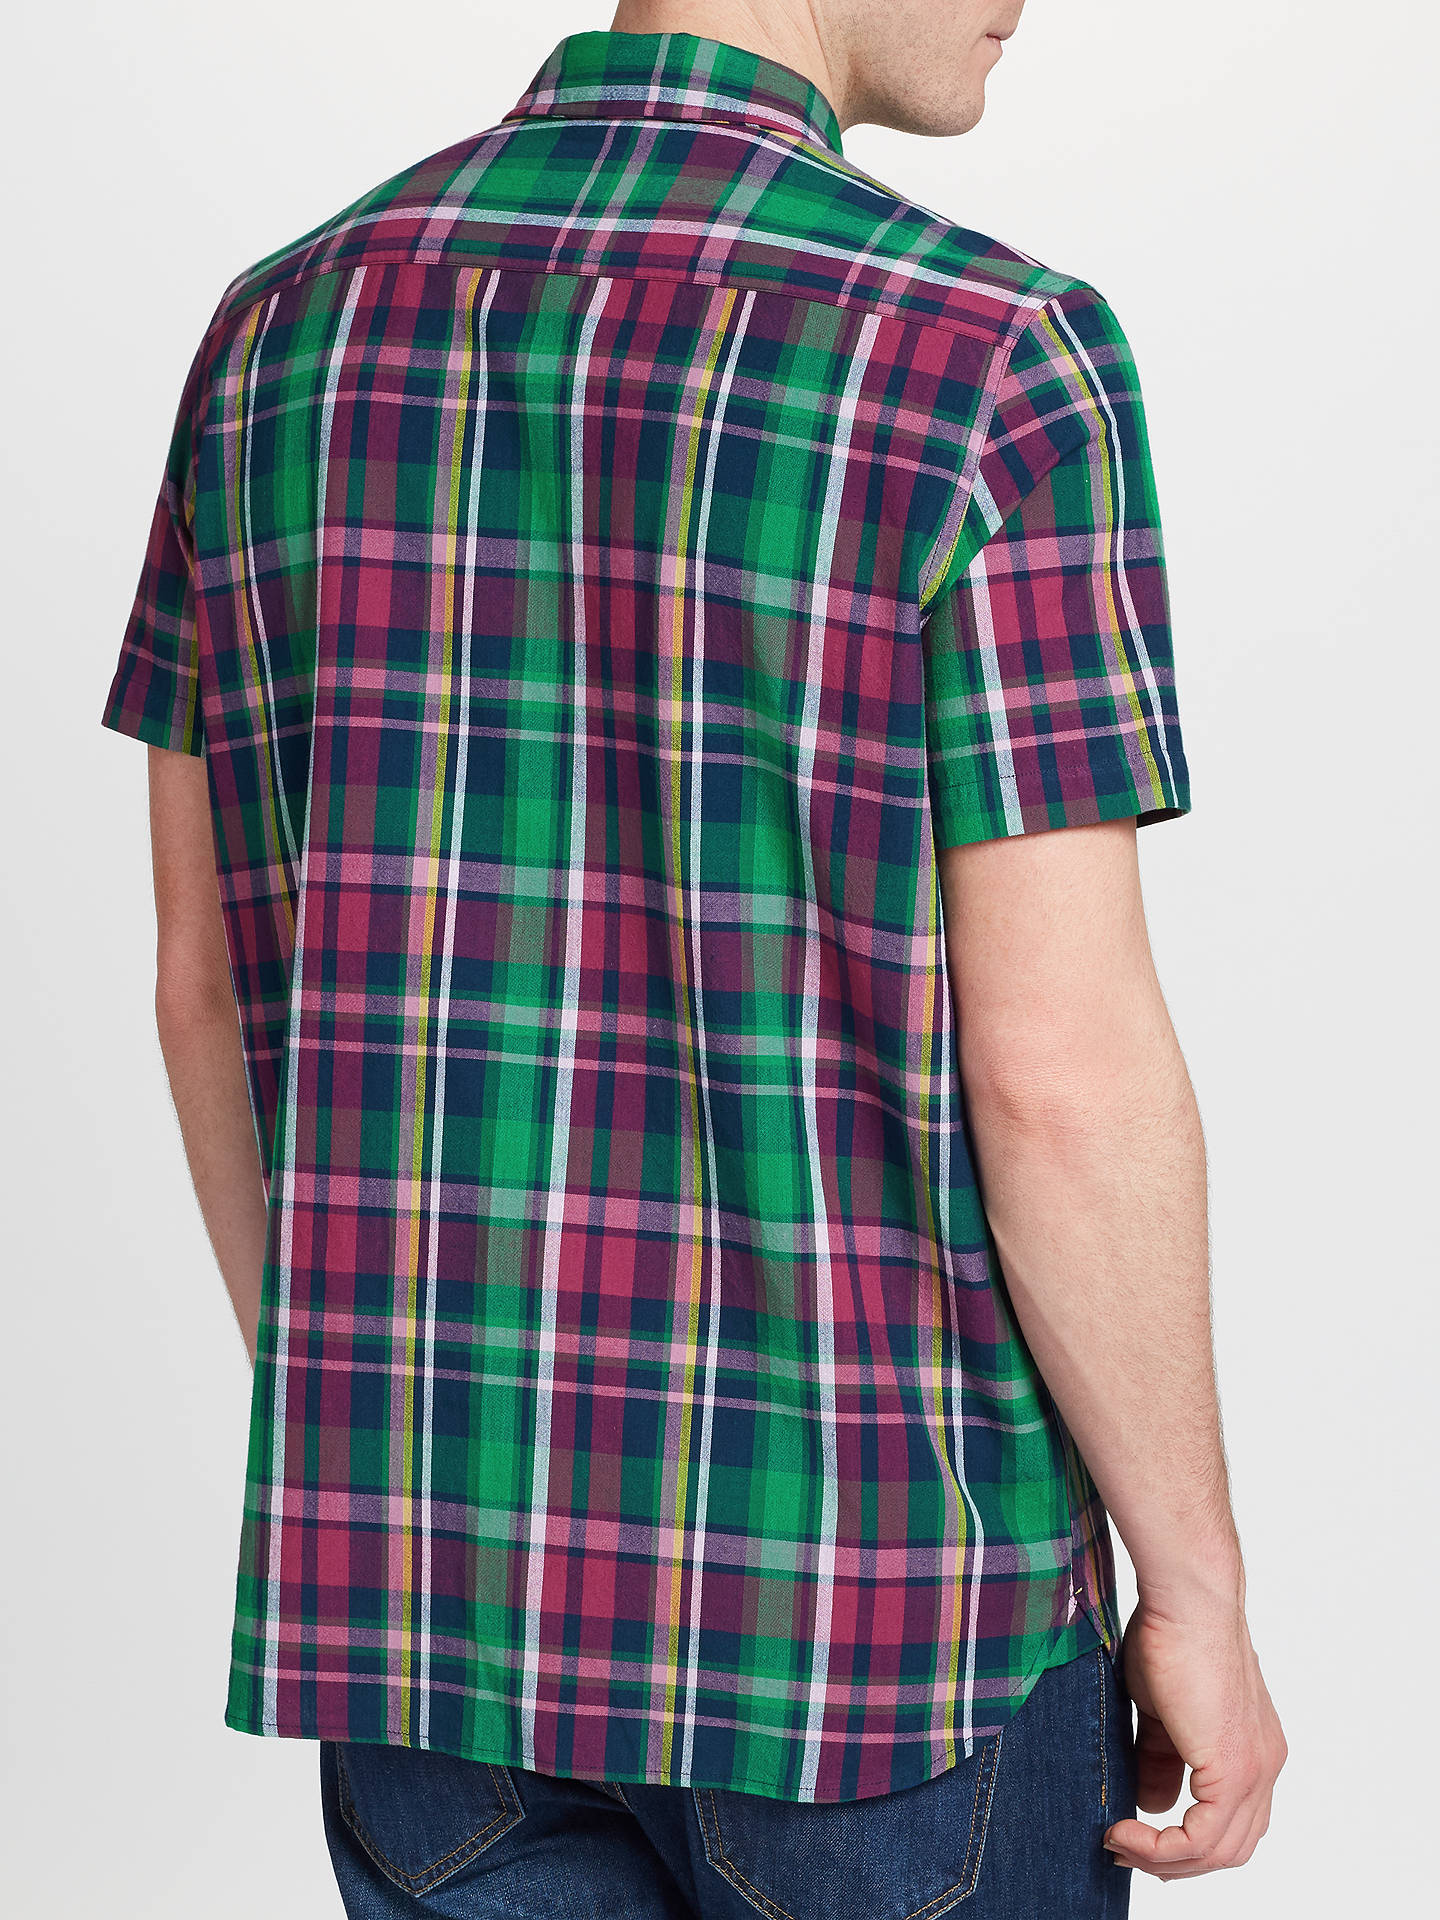 Buy John Lewis & Partners Fenton Short Sleeve Check Shirt, Berry, S Online at johnlewis.com